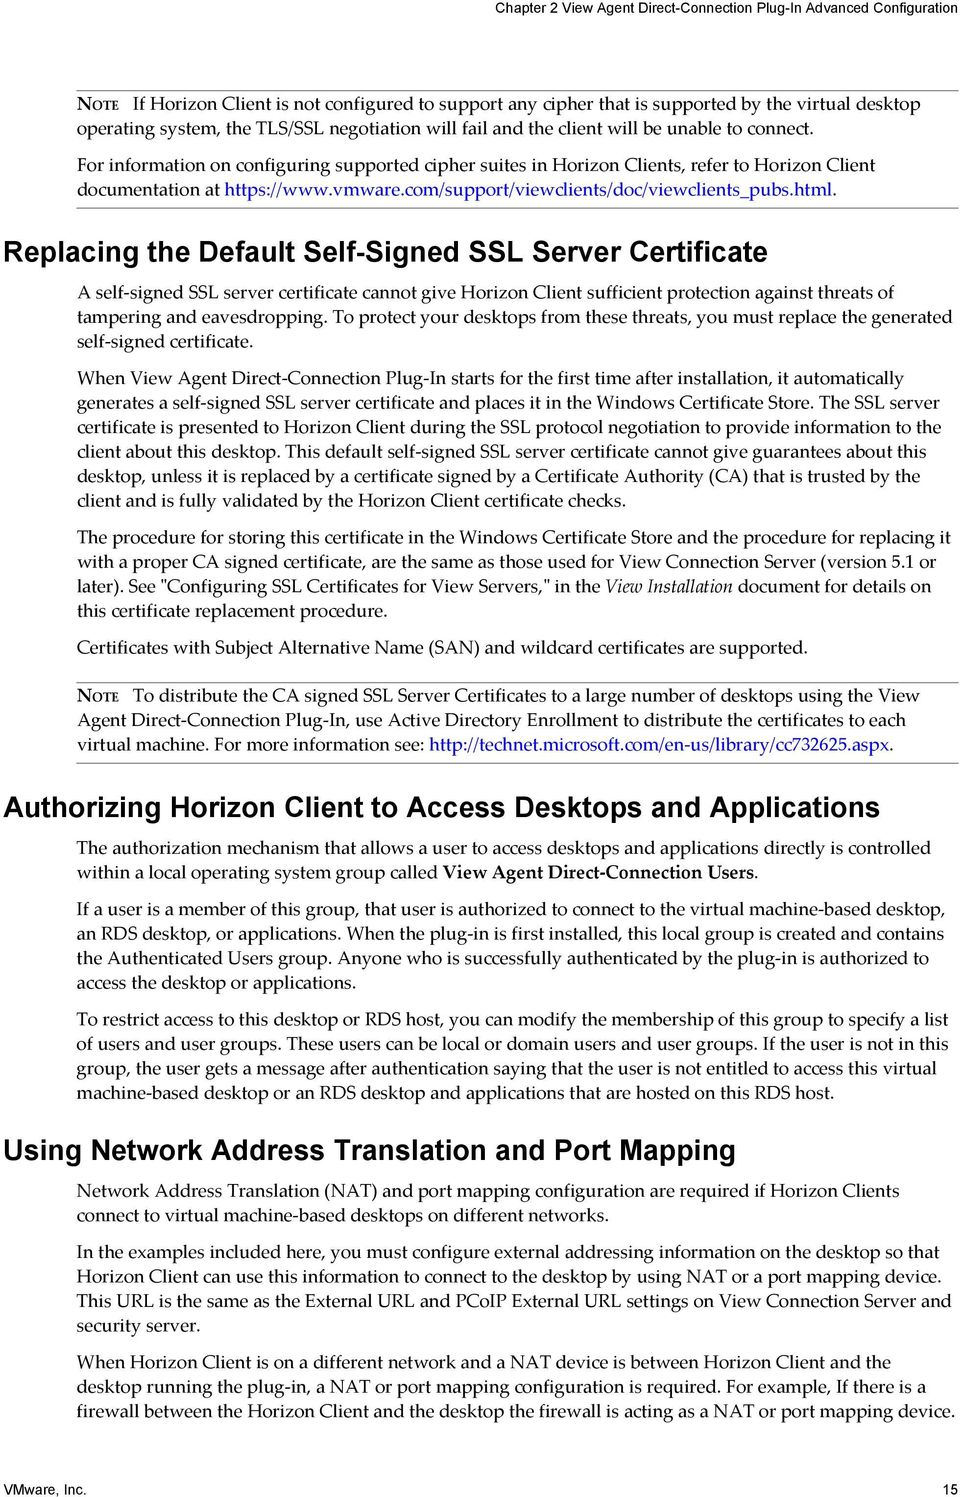 View Agent Direct Connection Plug In Administration Pdf